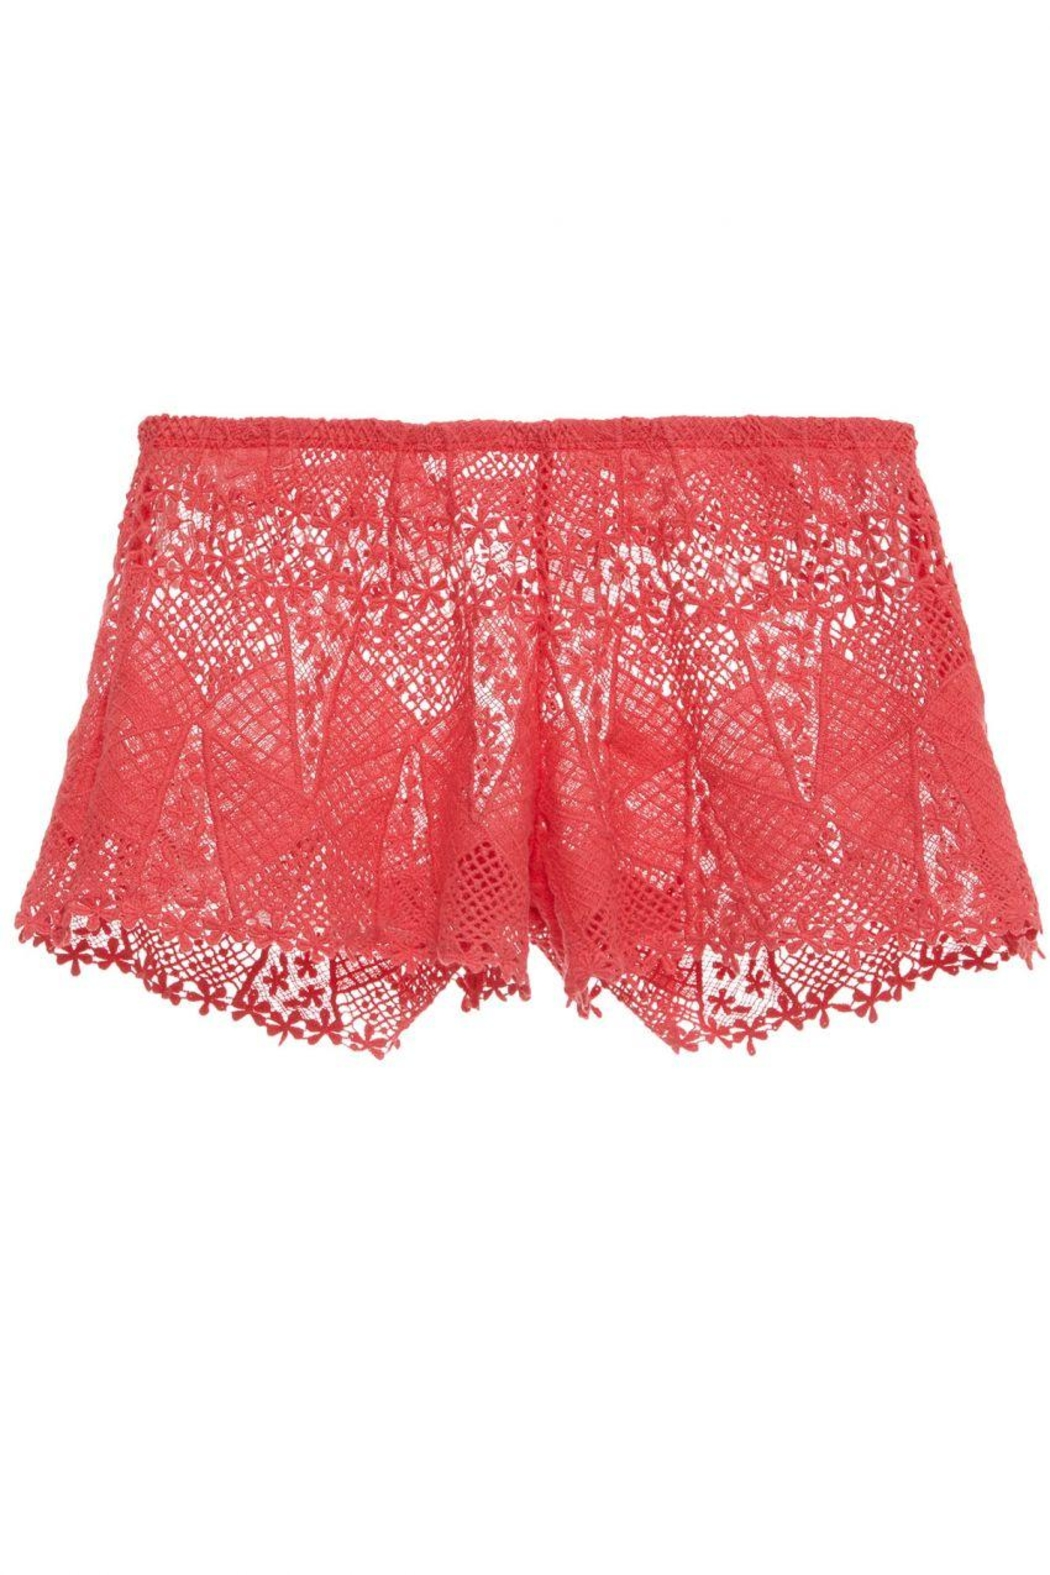 Eberjey Guajira Sam Shorts - Side Cropped Image